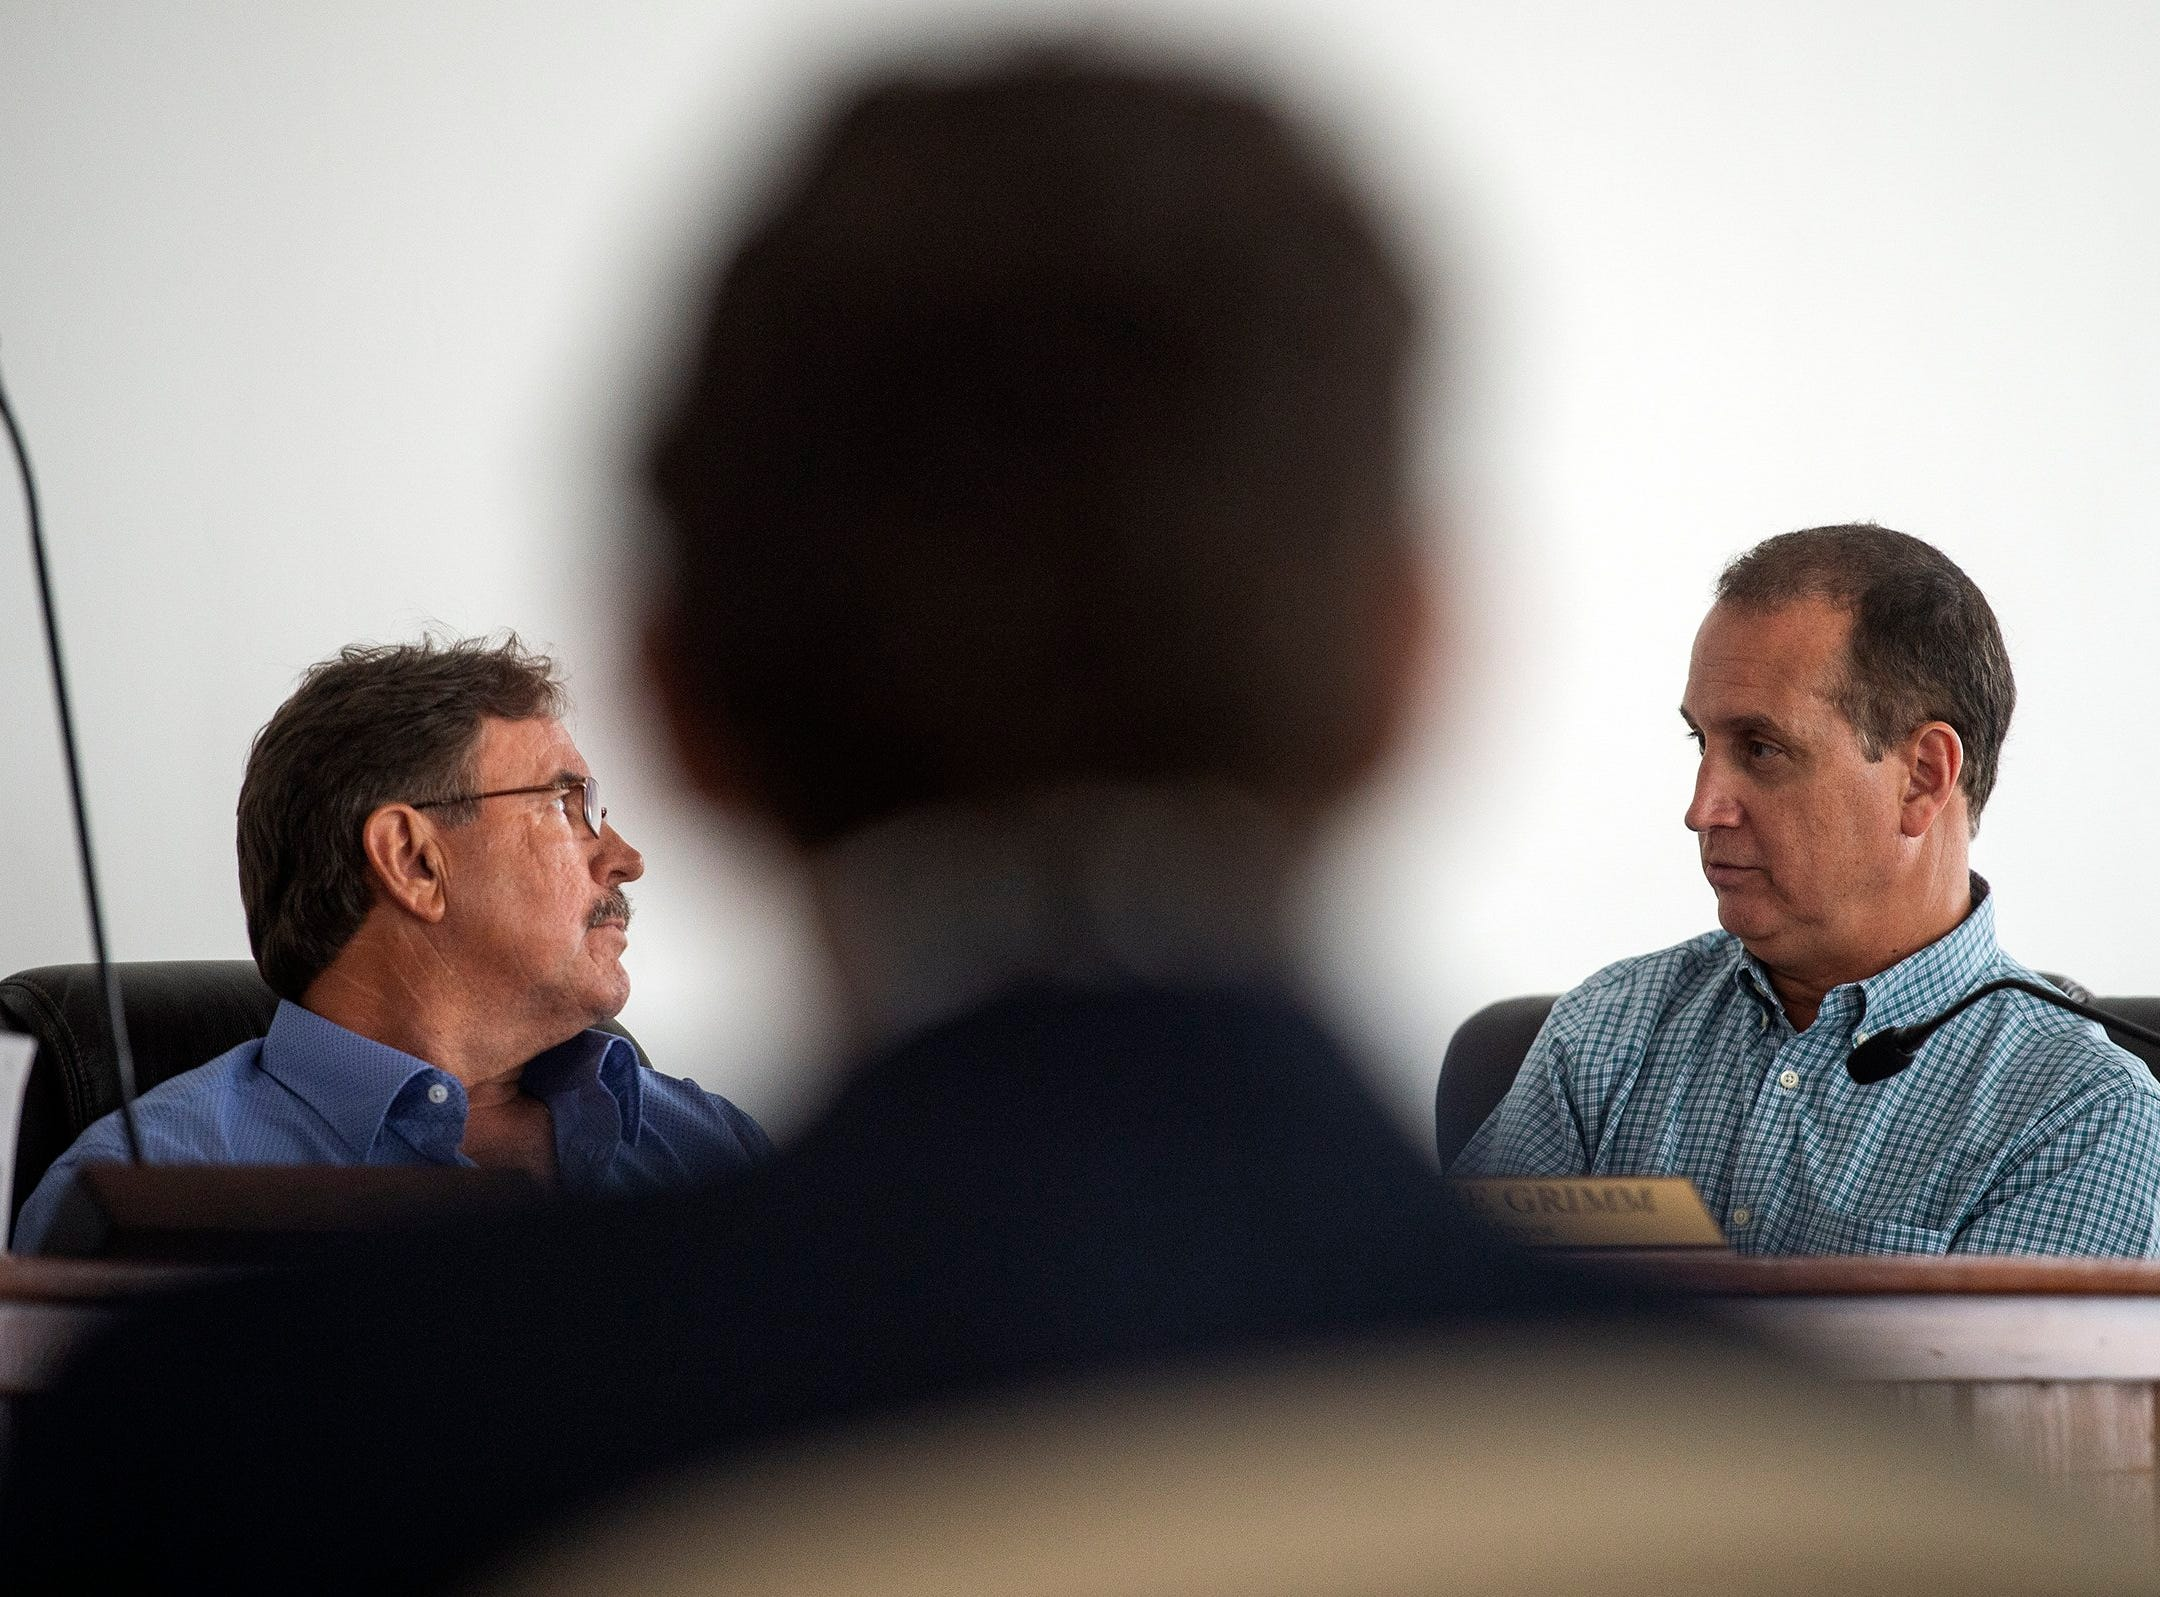 Everglades City Mayor Howie Grimm, left, and Congressman Mario Diaz-Balart talk during a press conference in Everglades City, Fla. on Monday, September 10, 2018. Elected officials took a tour of Everglades City, one of the areas hardest hit by Hurricane Irma, and discuseds the continued federal role in disaster recovery one year after Hurricane Irma landed in Florida.